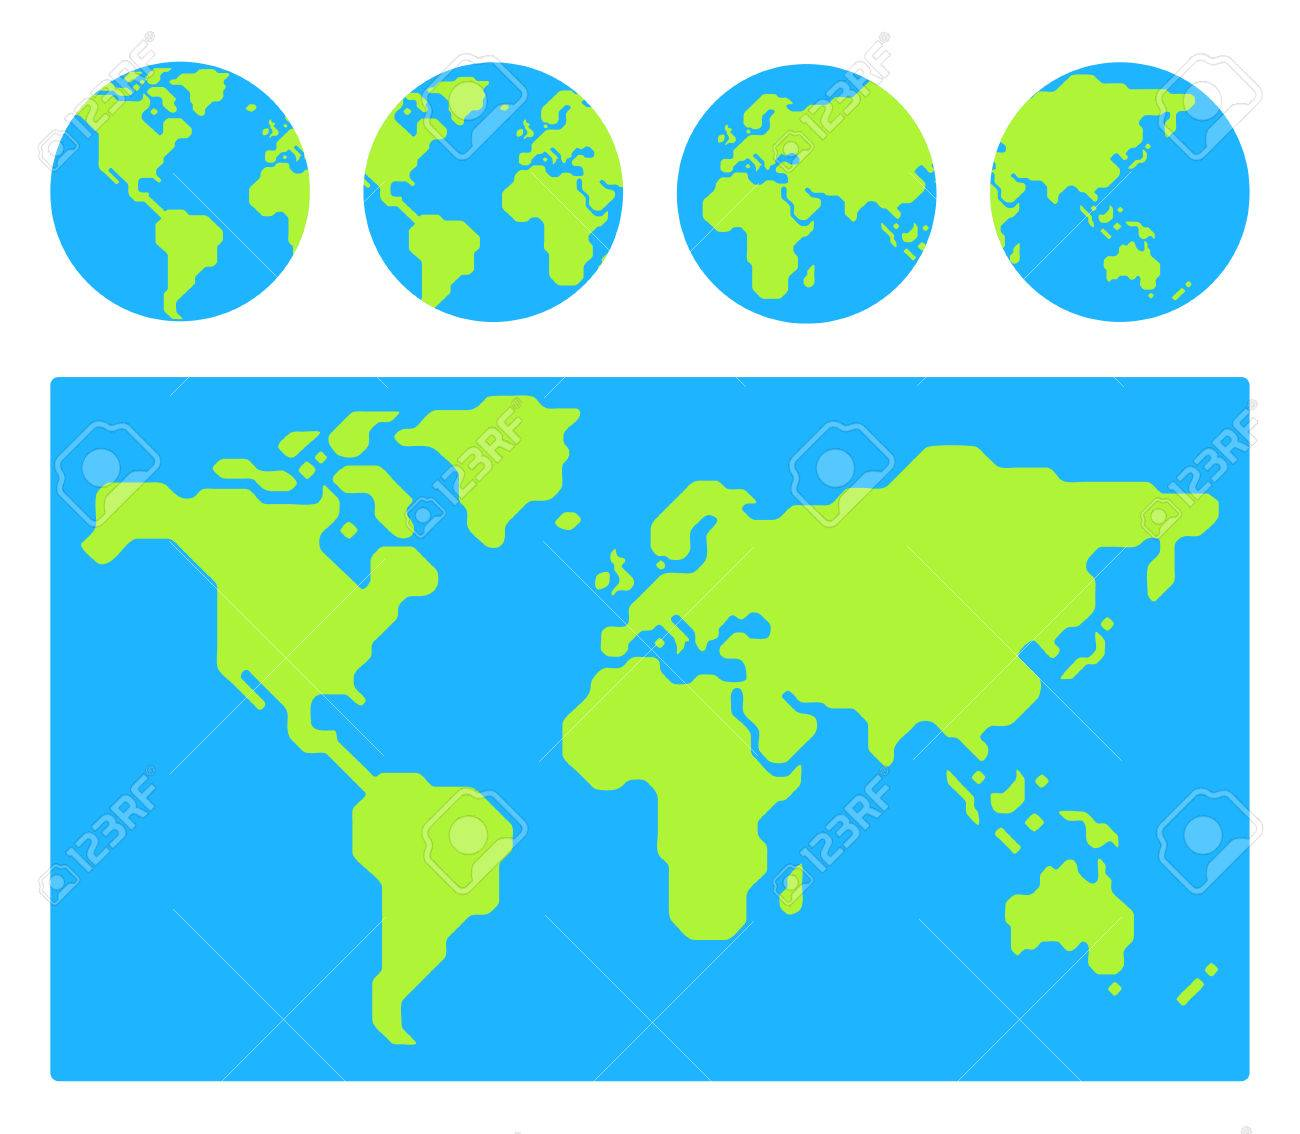 World map with 4 globe icons from different sides stylized world map with 4 globe icons from different sides stylized geometric flat vector stock gumiabroncs Gallery